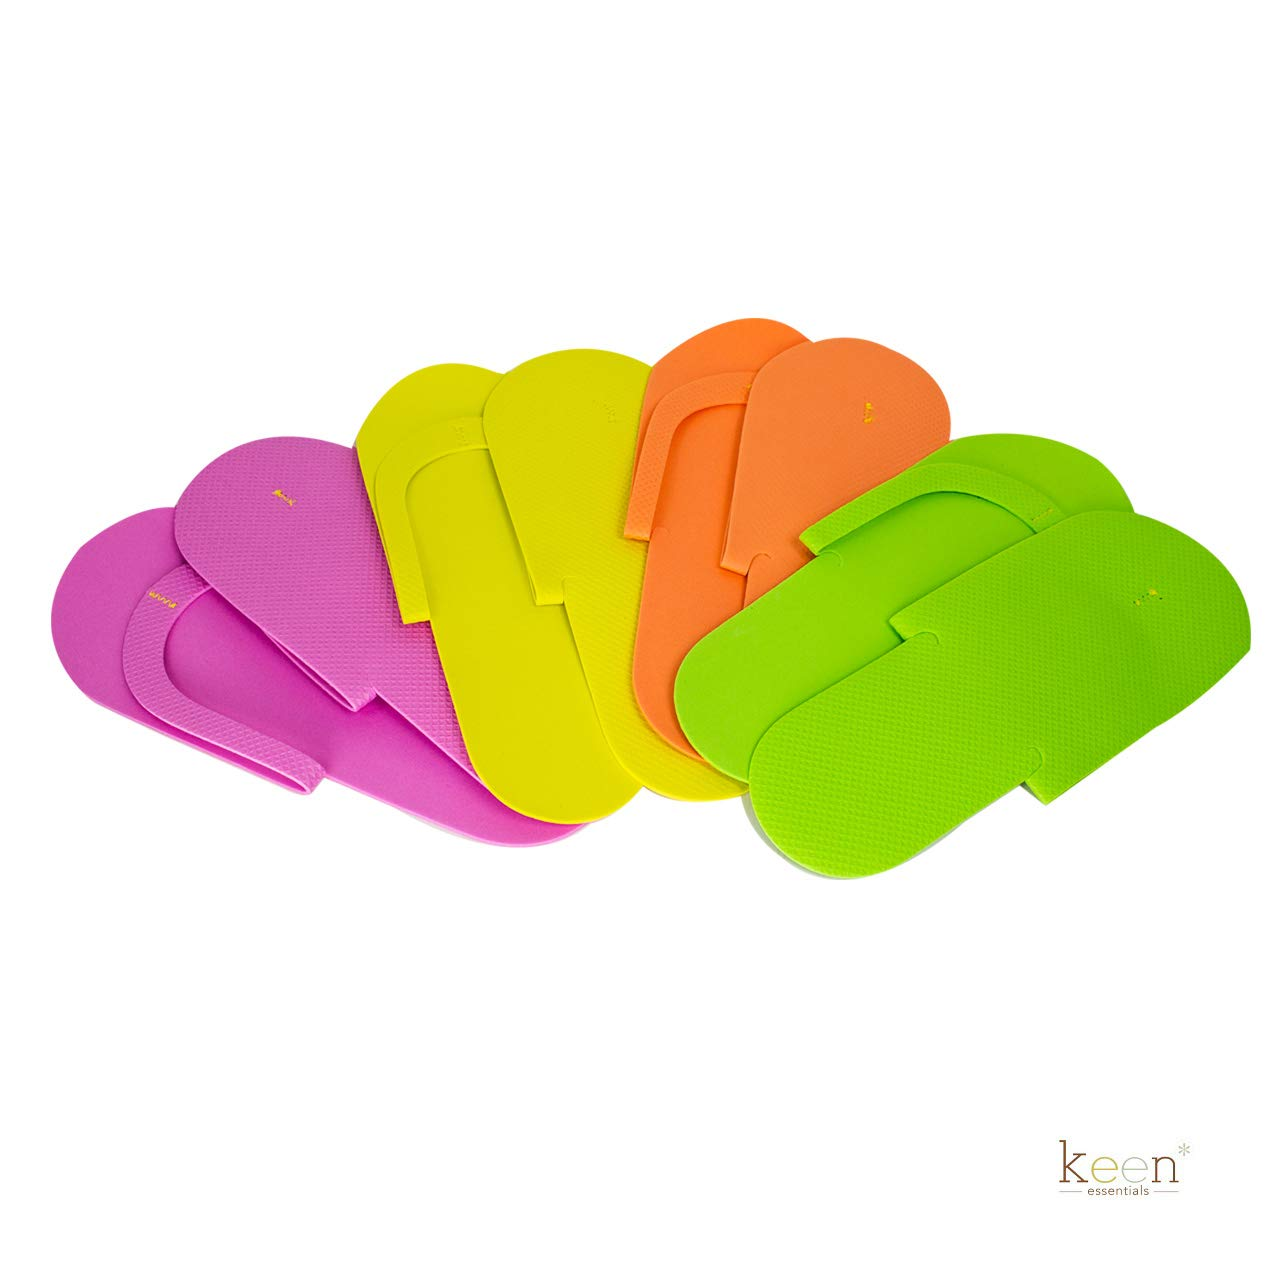 360 Pairs (1 case) Disposable Pedicure Slippers Foam Flip Flops SEWING Style for Nail Salon, Home Use ASSORTED COLORS by KEEN ESSENTIALS